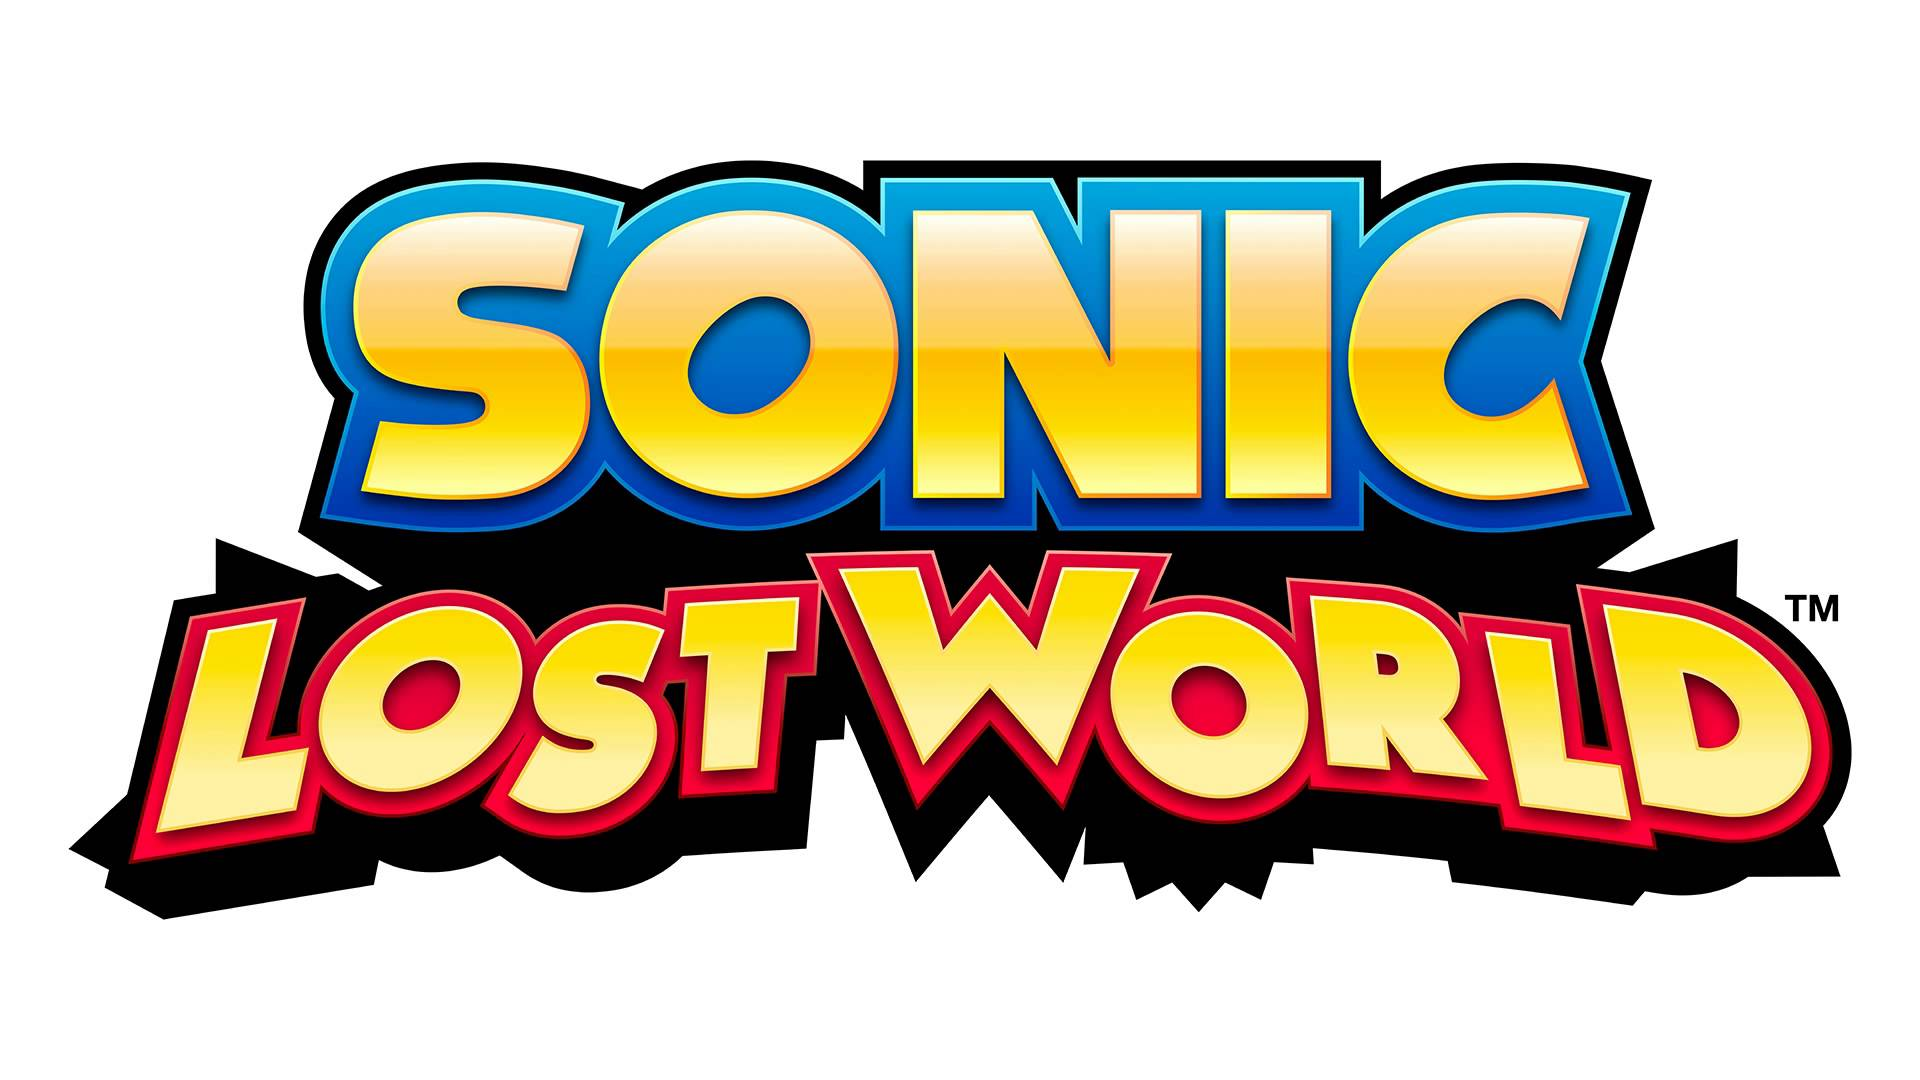 Cutscene - Ending - Sonic Lost World